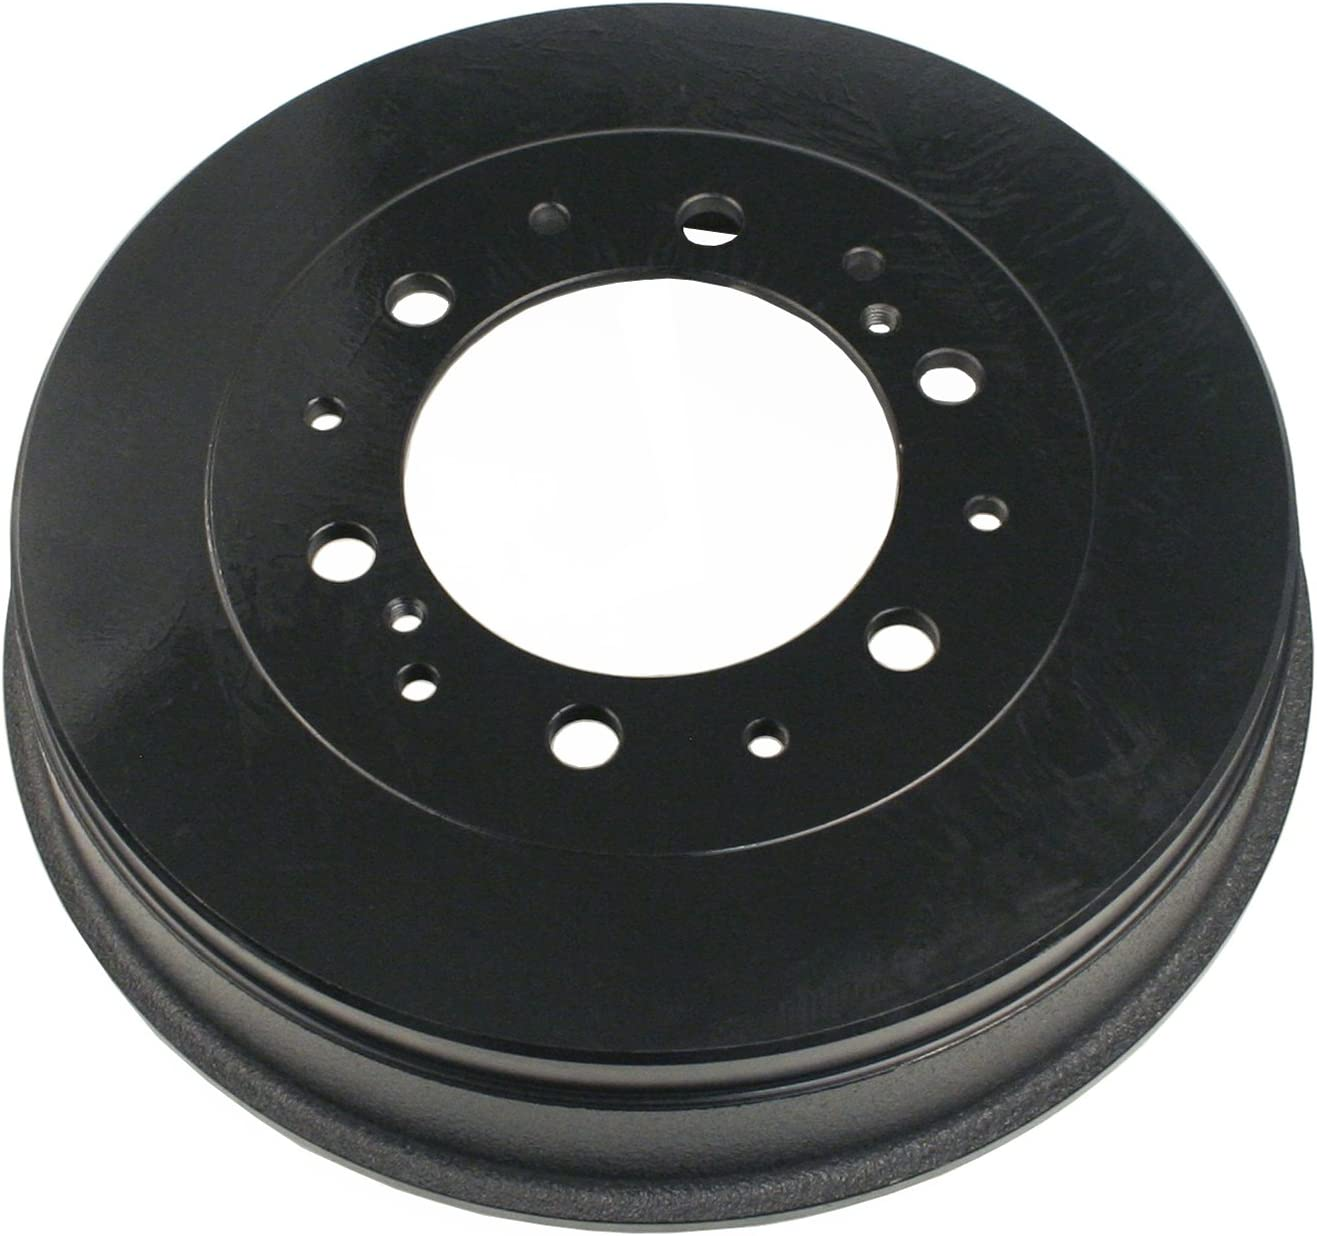 Free shipping anywhere in the nation Beck Arnley Attention brand 083-3365 Brake Premium Drum